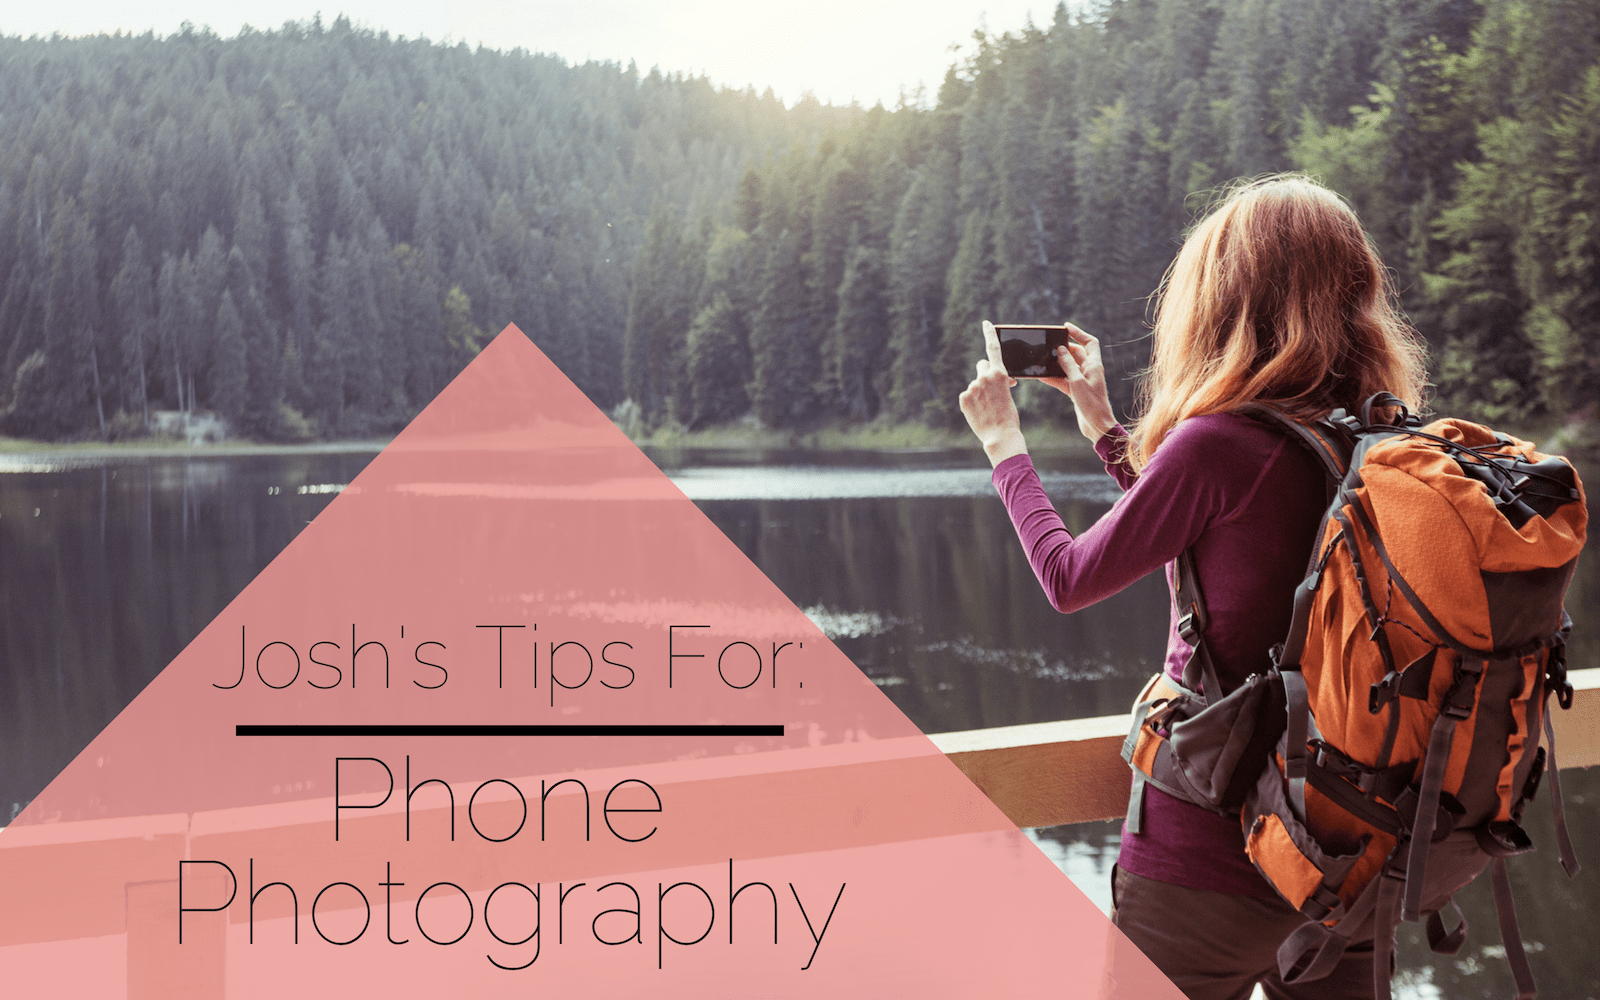 Phone Photography Tips For Great Pictures